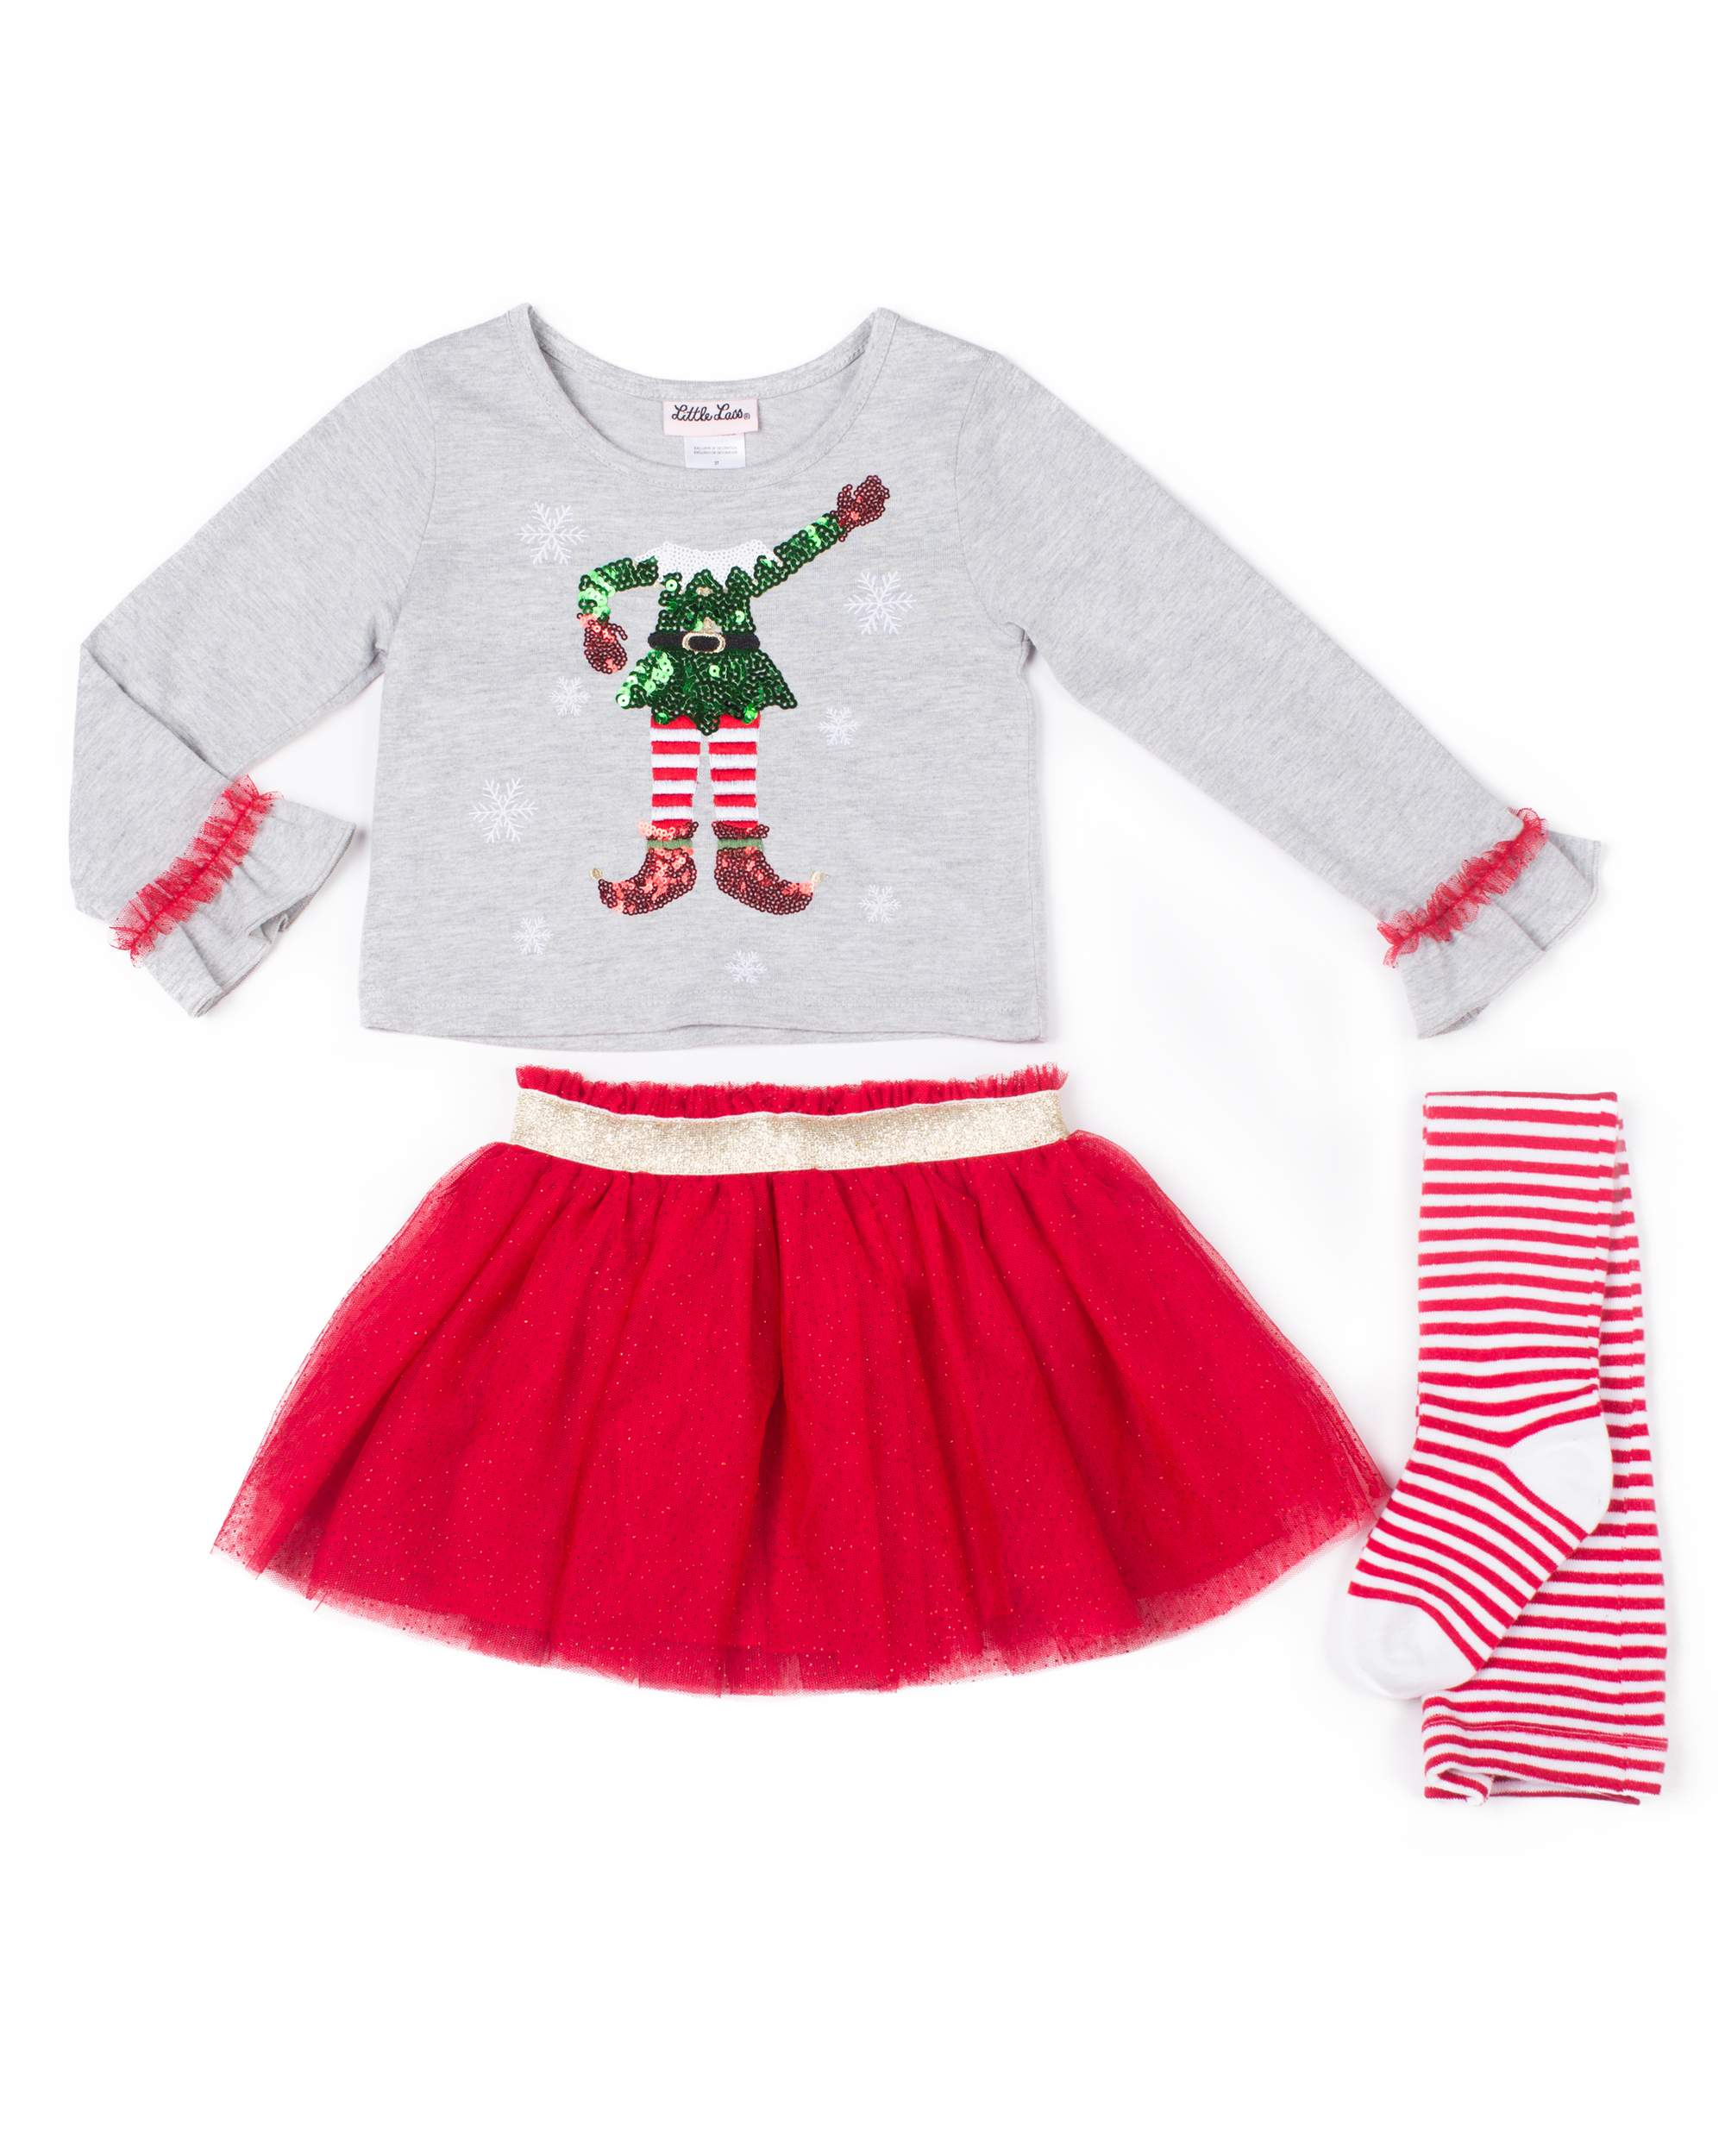 Holiday Elfie Selfie Top, Tulle Skirt & Tights, 3-Piece Outfit Set (Little Girls)